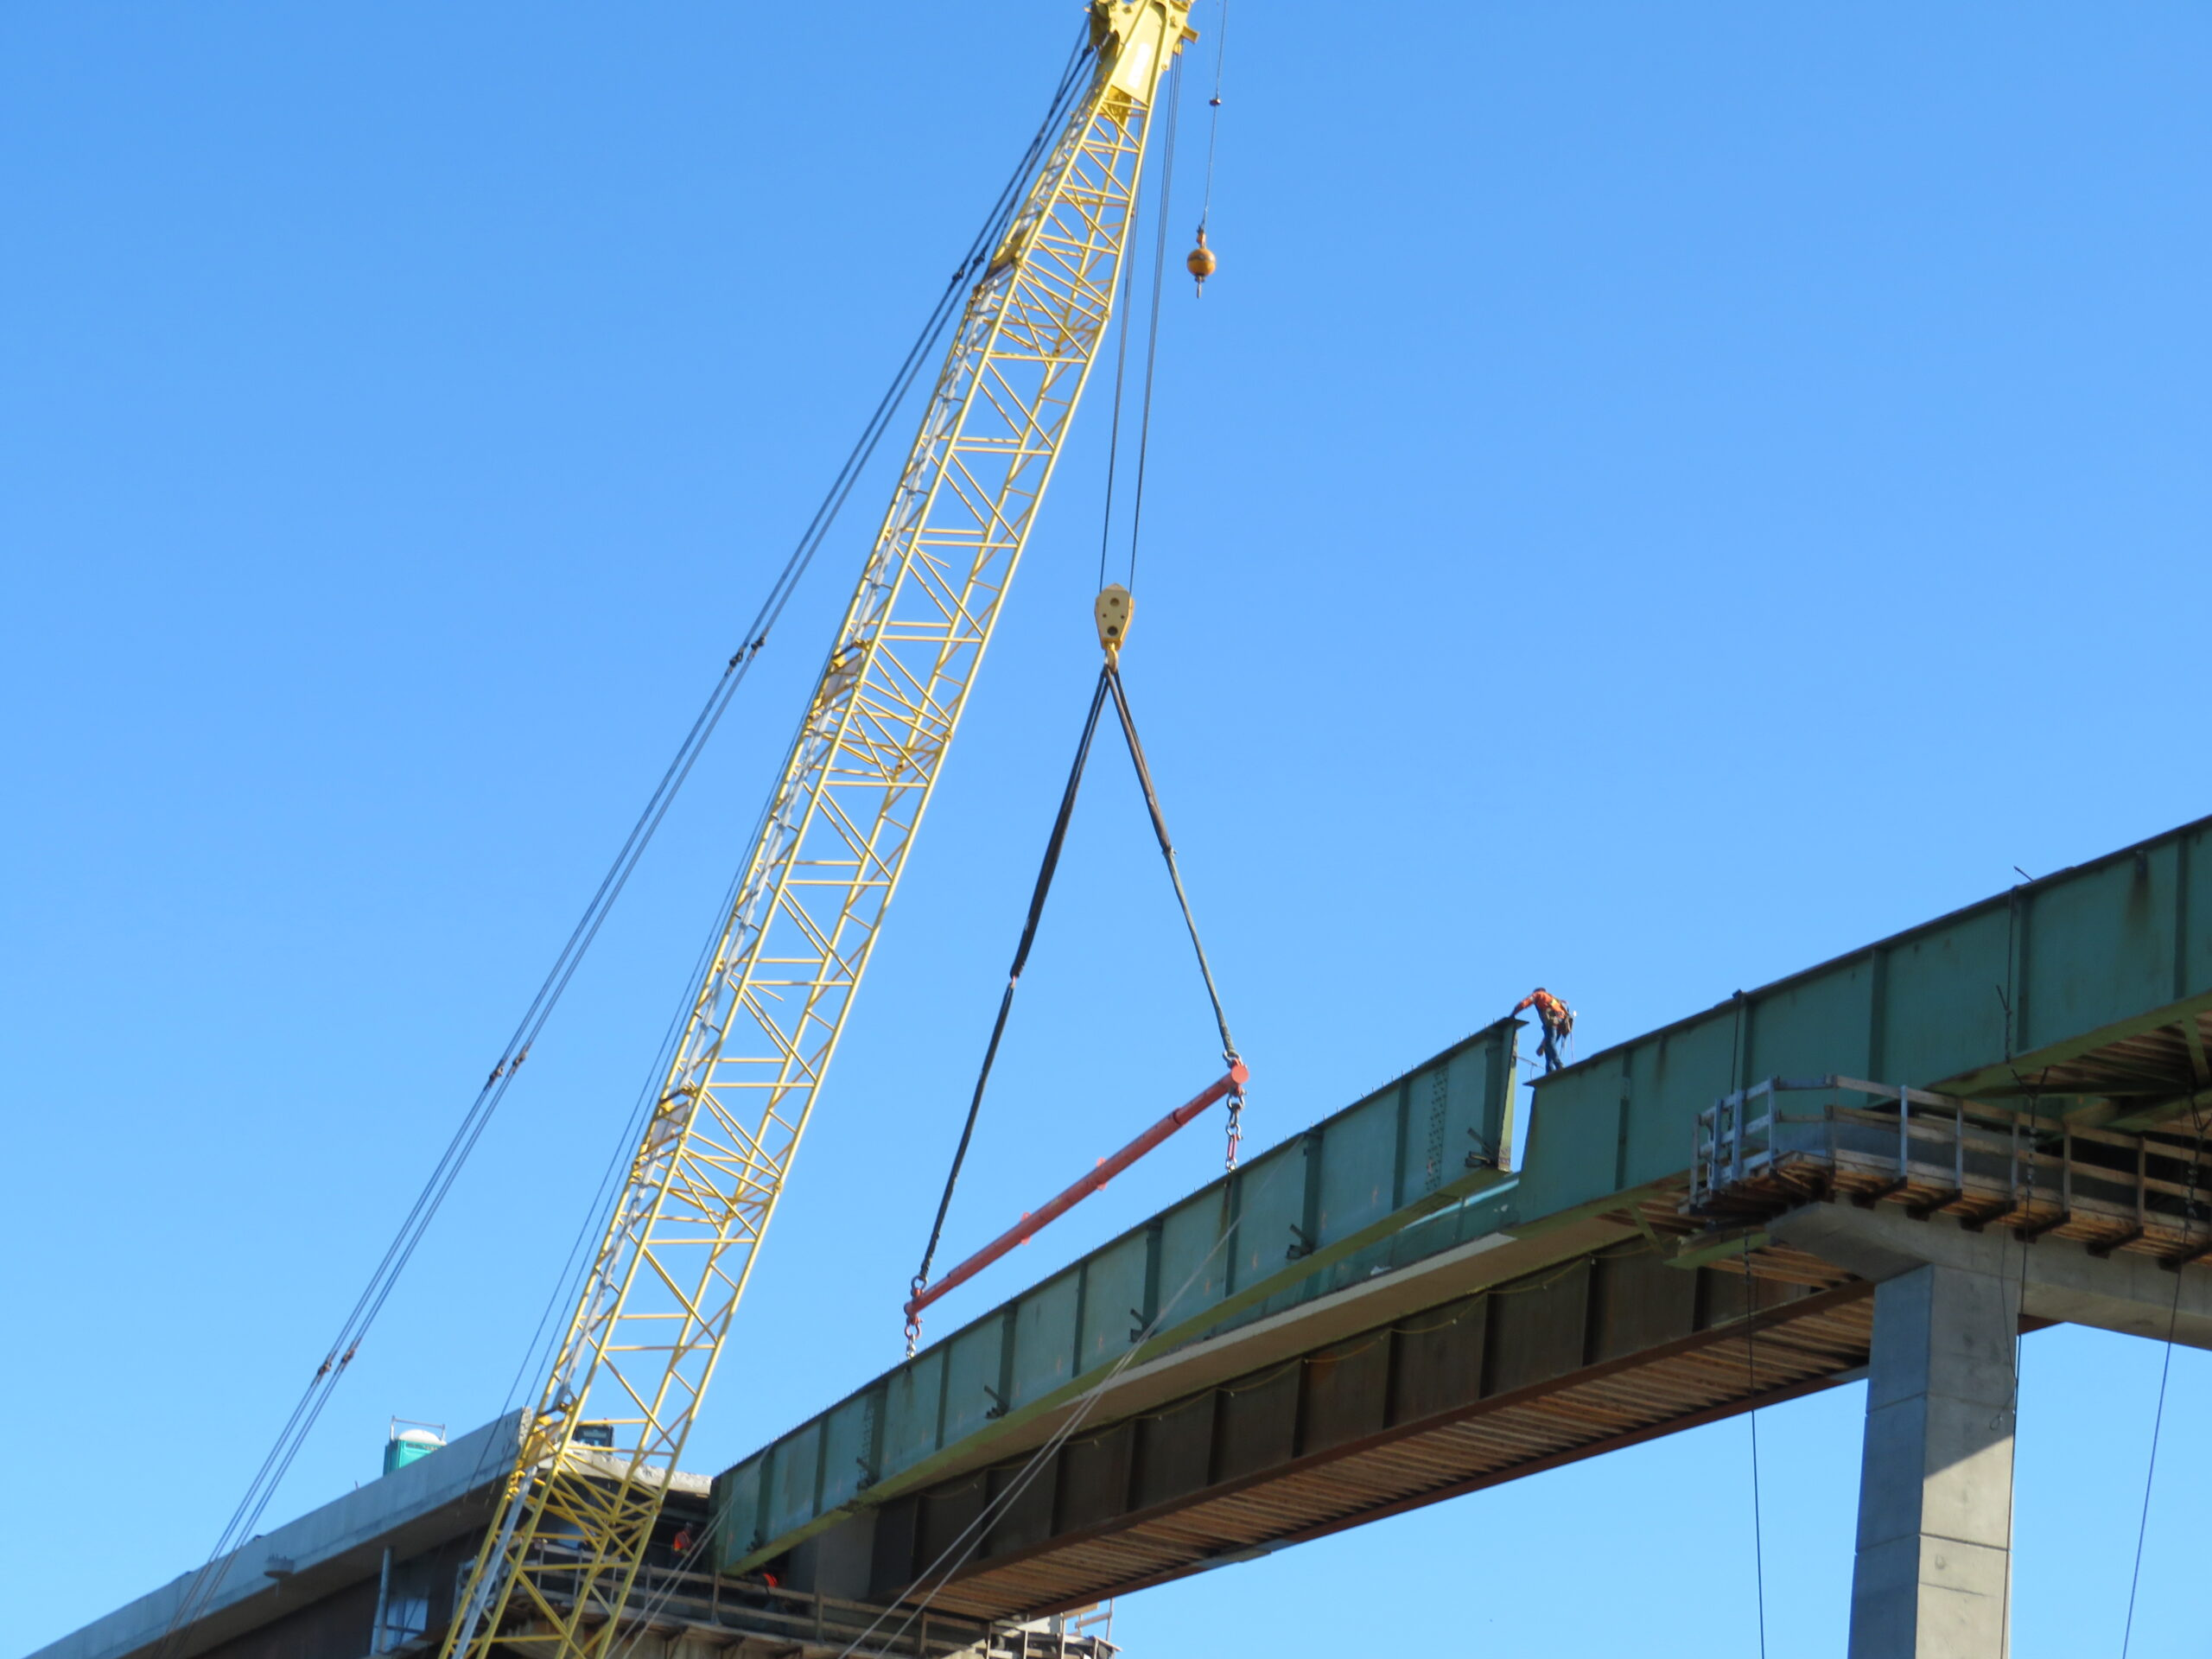 Preparing to lower the removed girder section